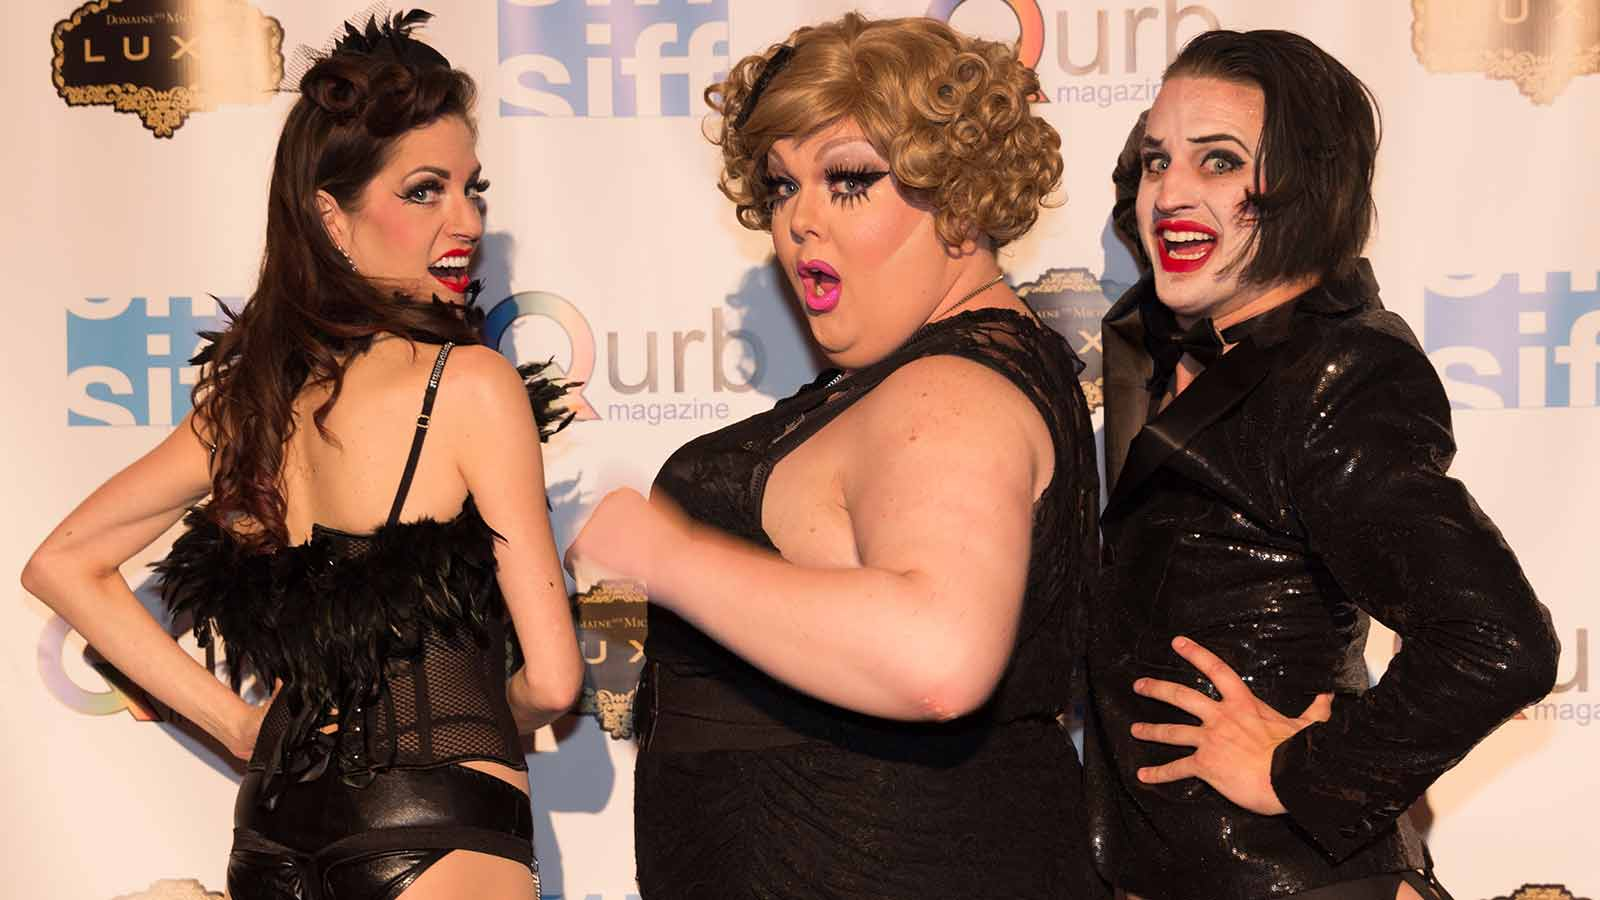 Three Drag Queens